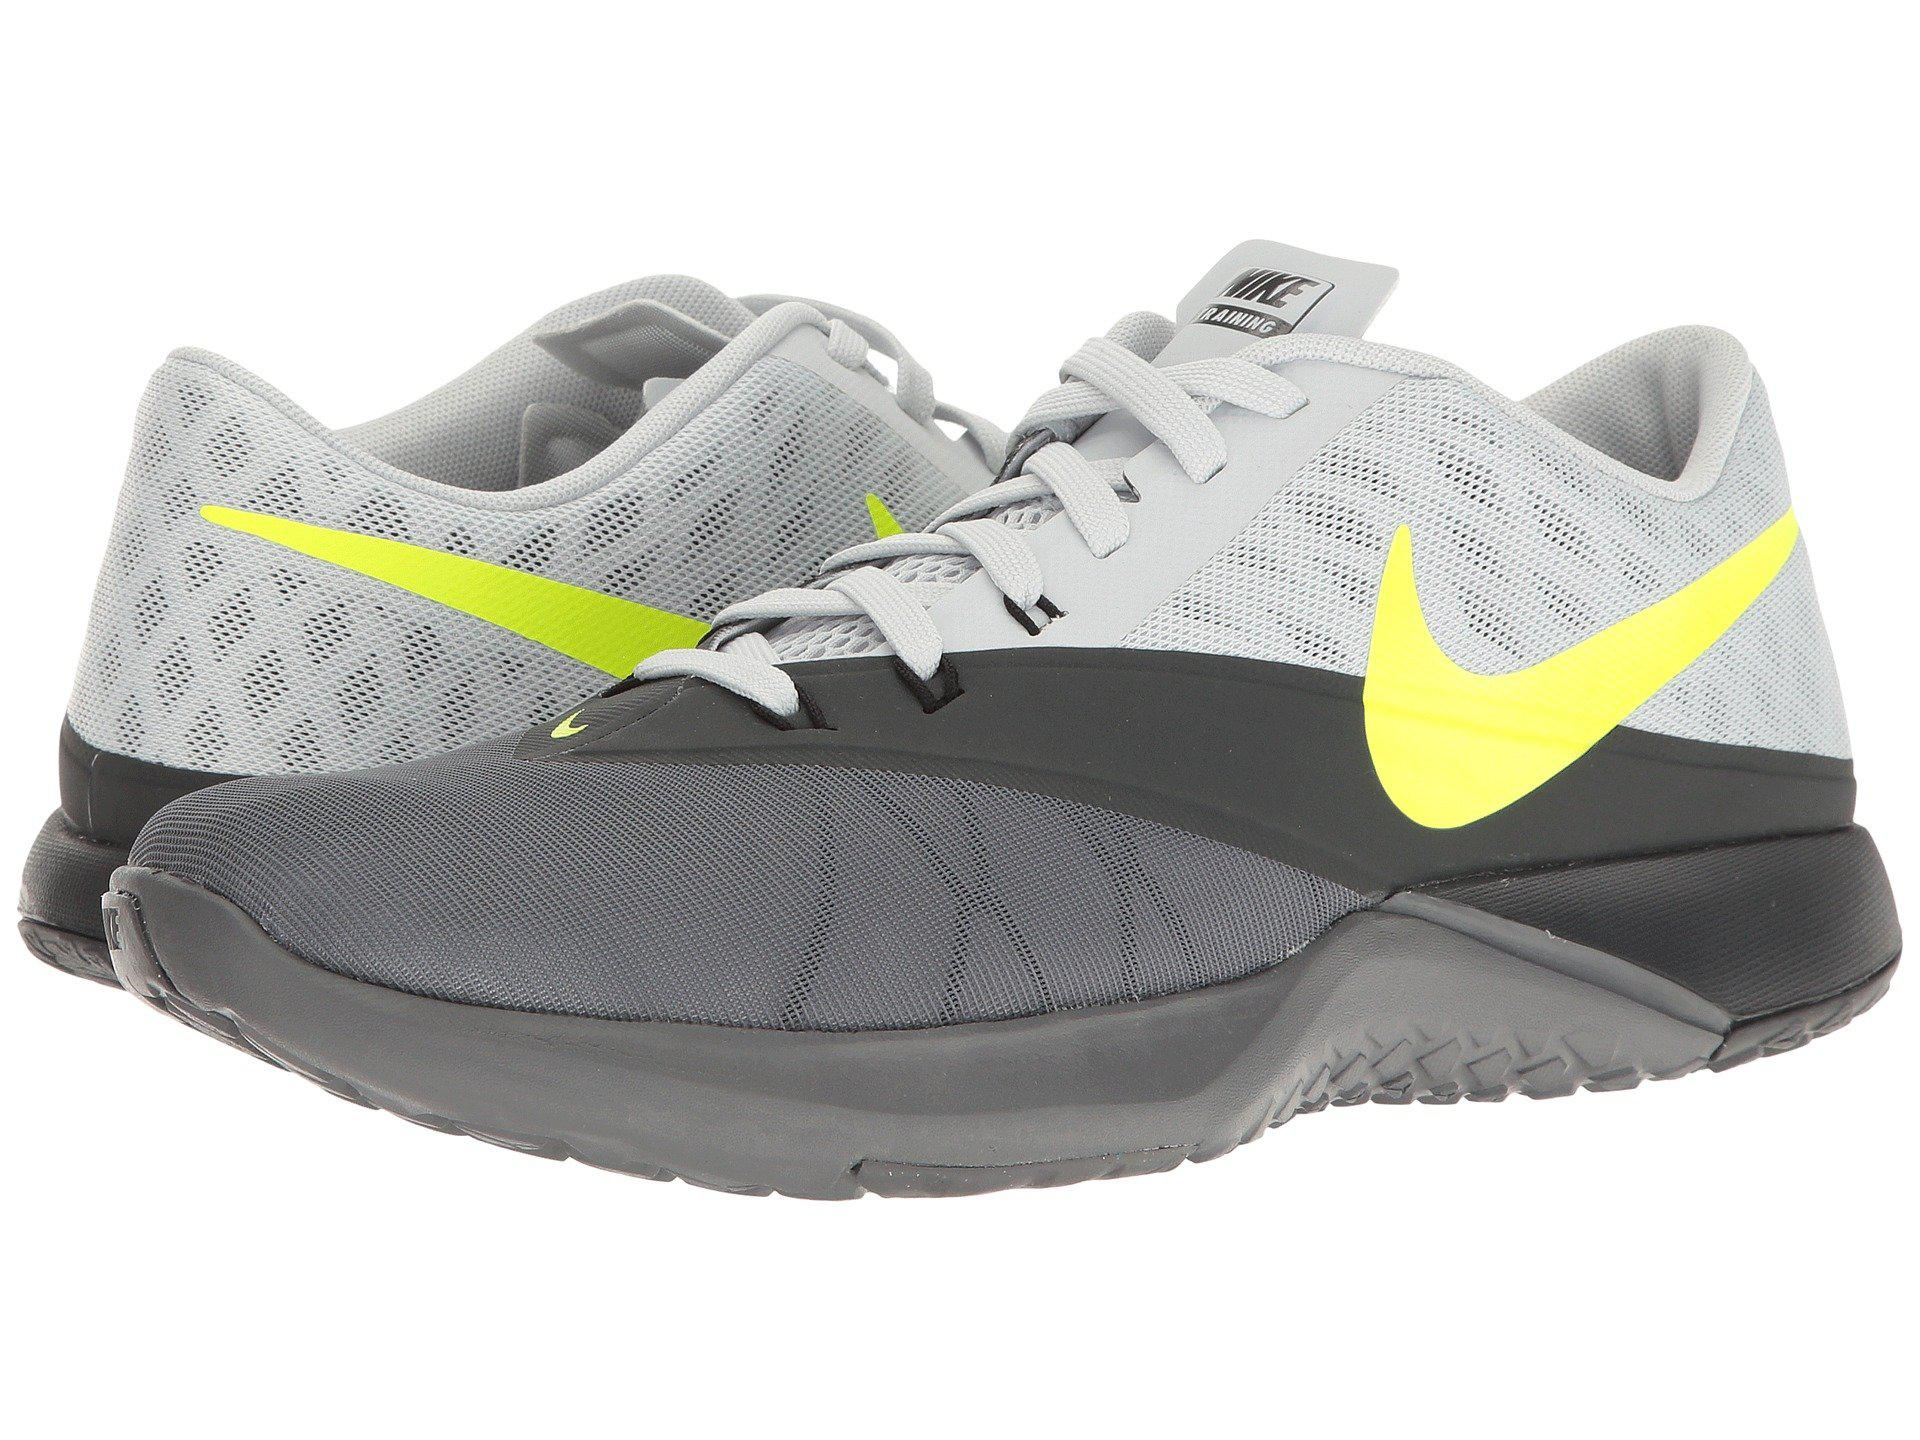 5d3f06e5a39d Lyst - Nike Fs Lite Trainer 4 in Gray for Men